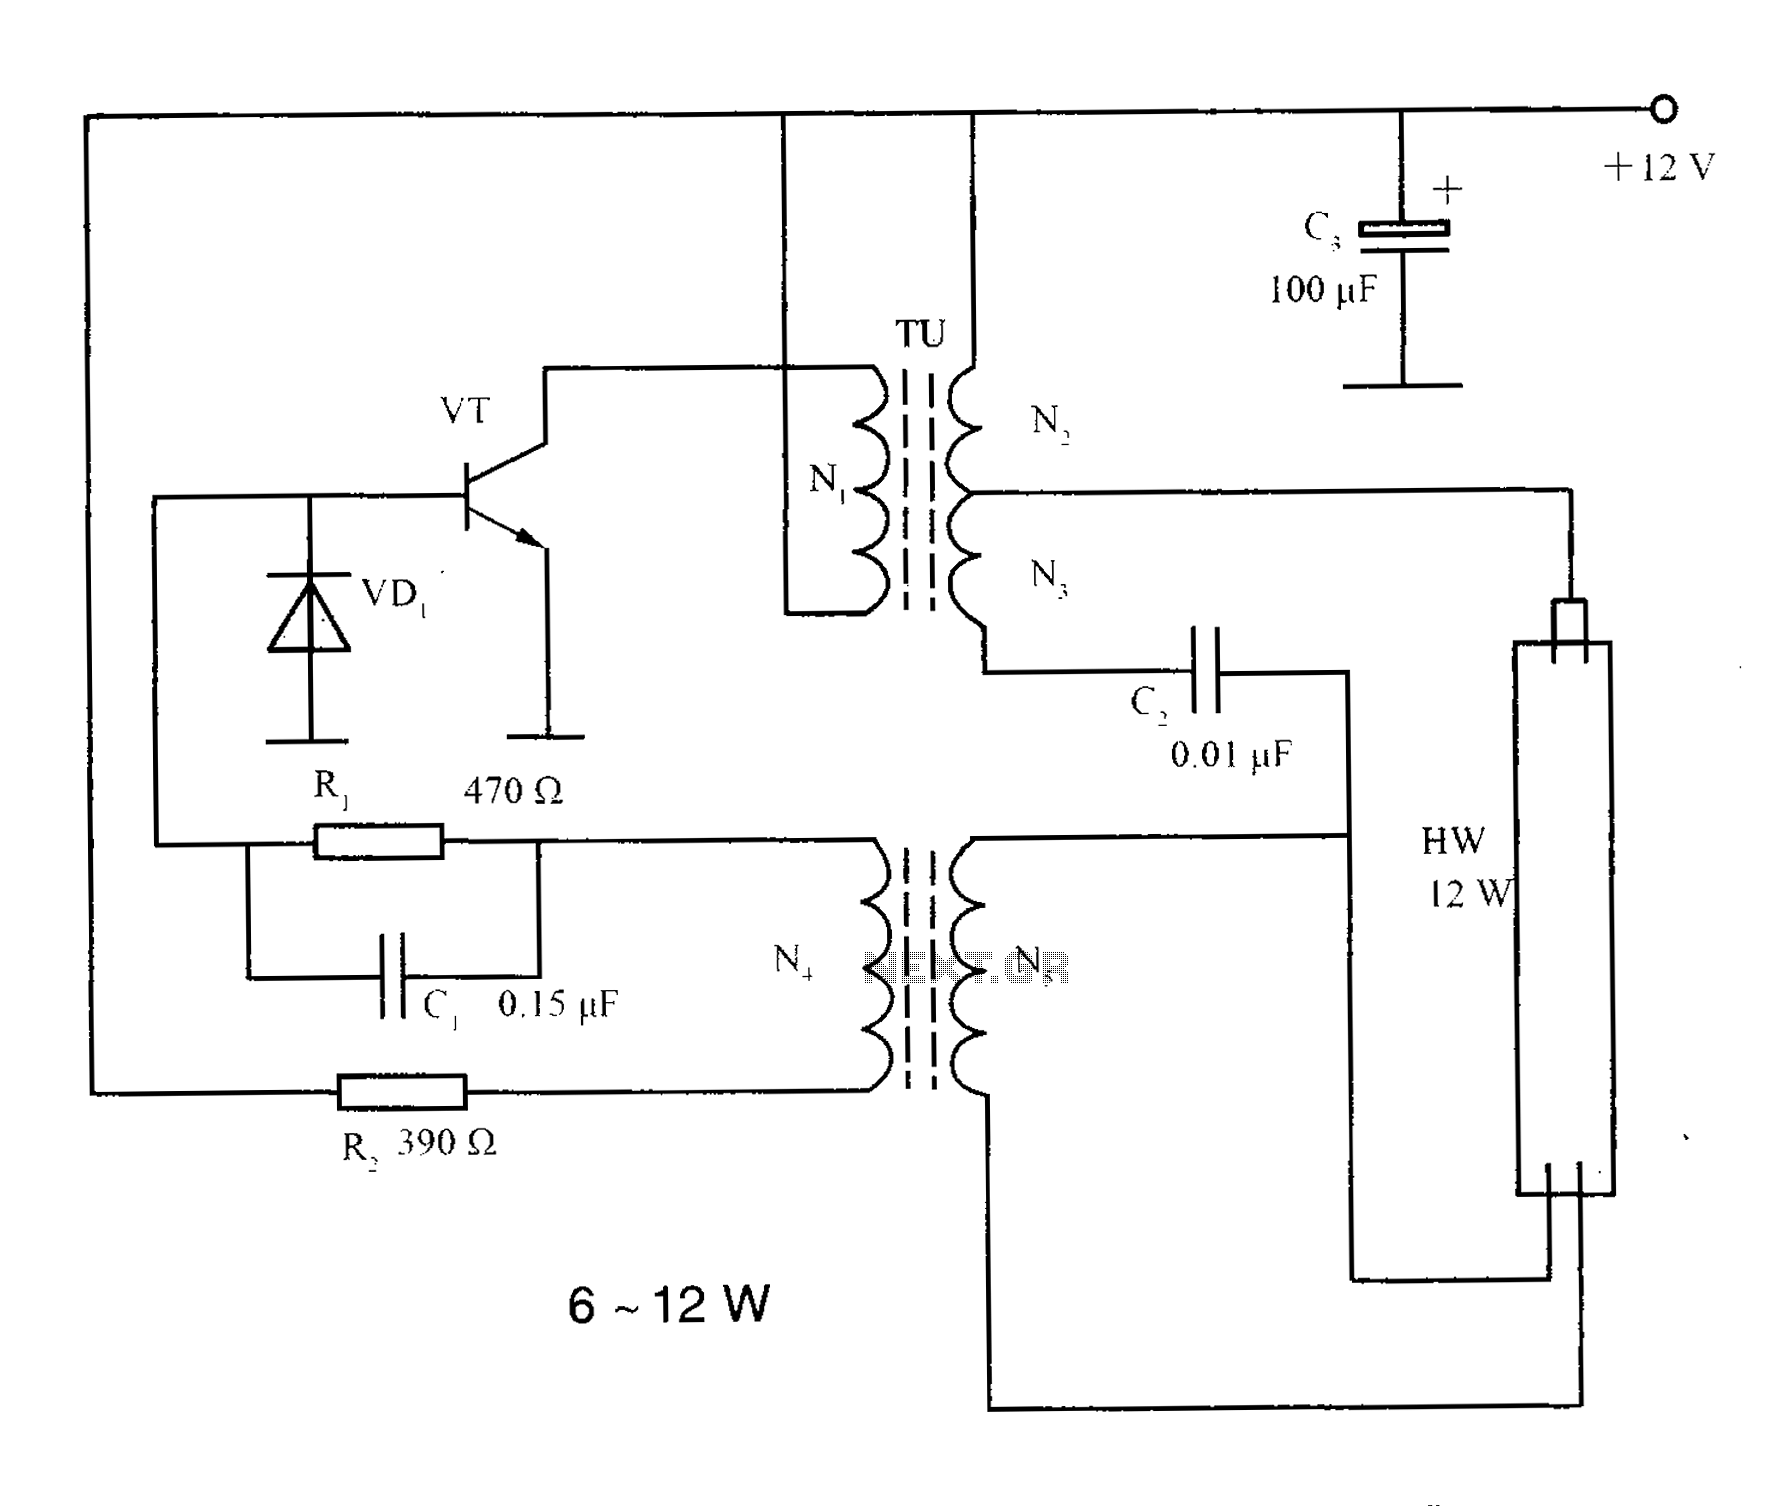 wiring diagram of ups how to install inverter in 2 rooms 1989 honda accord ignition lighting ideas